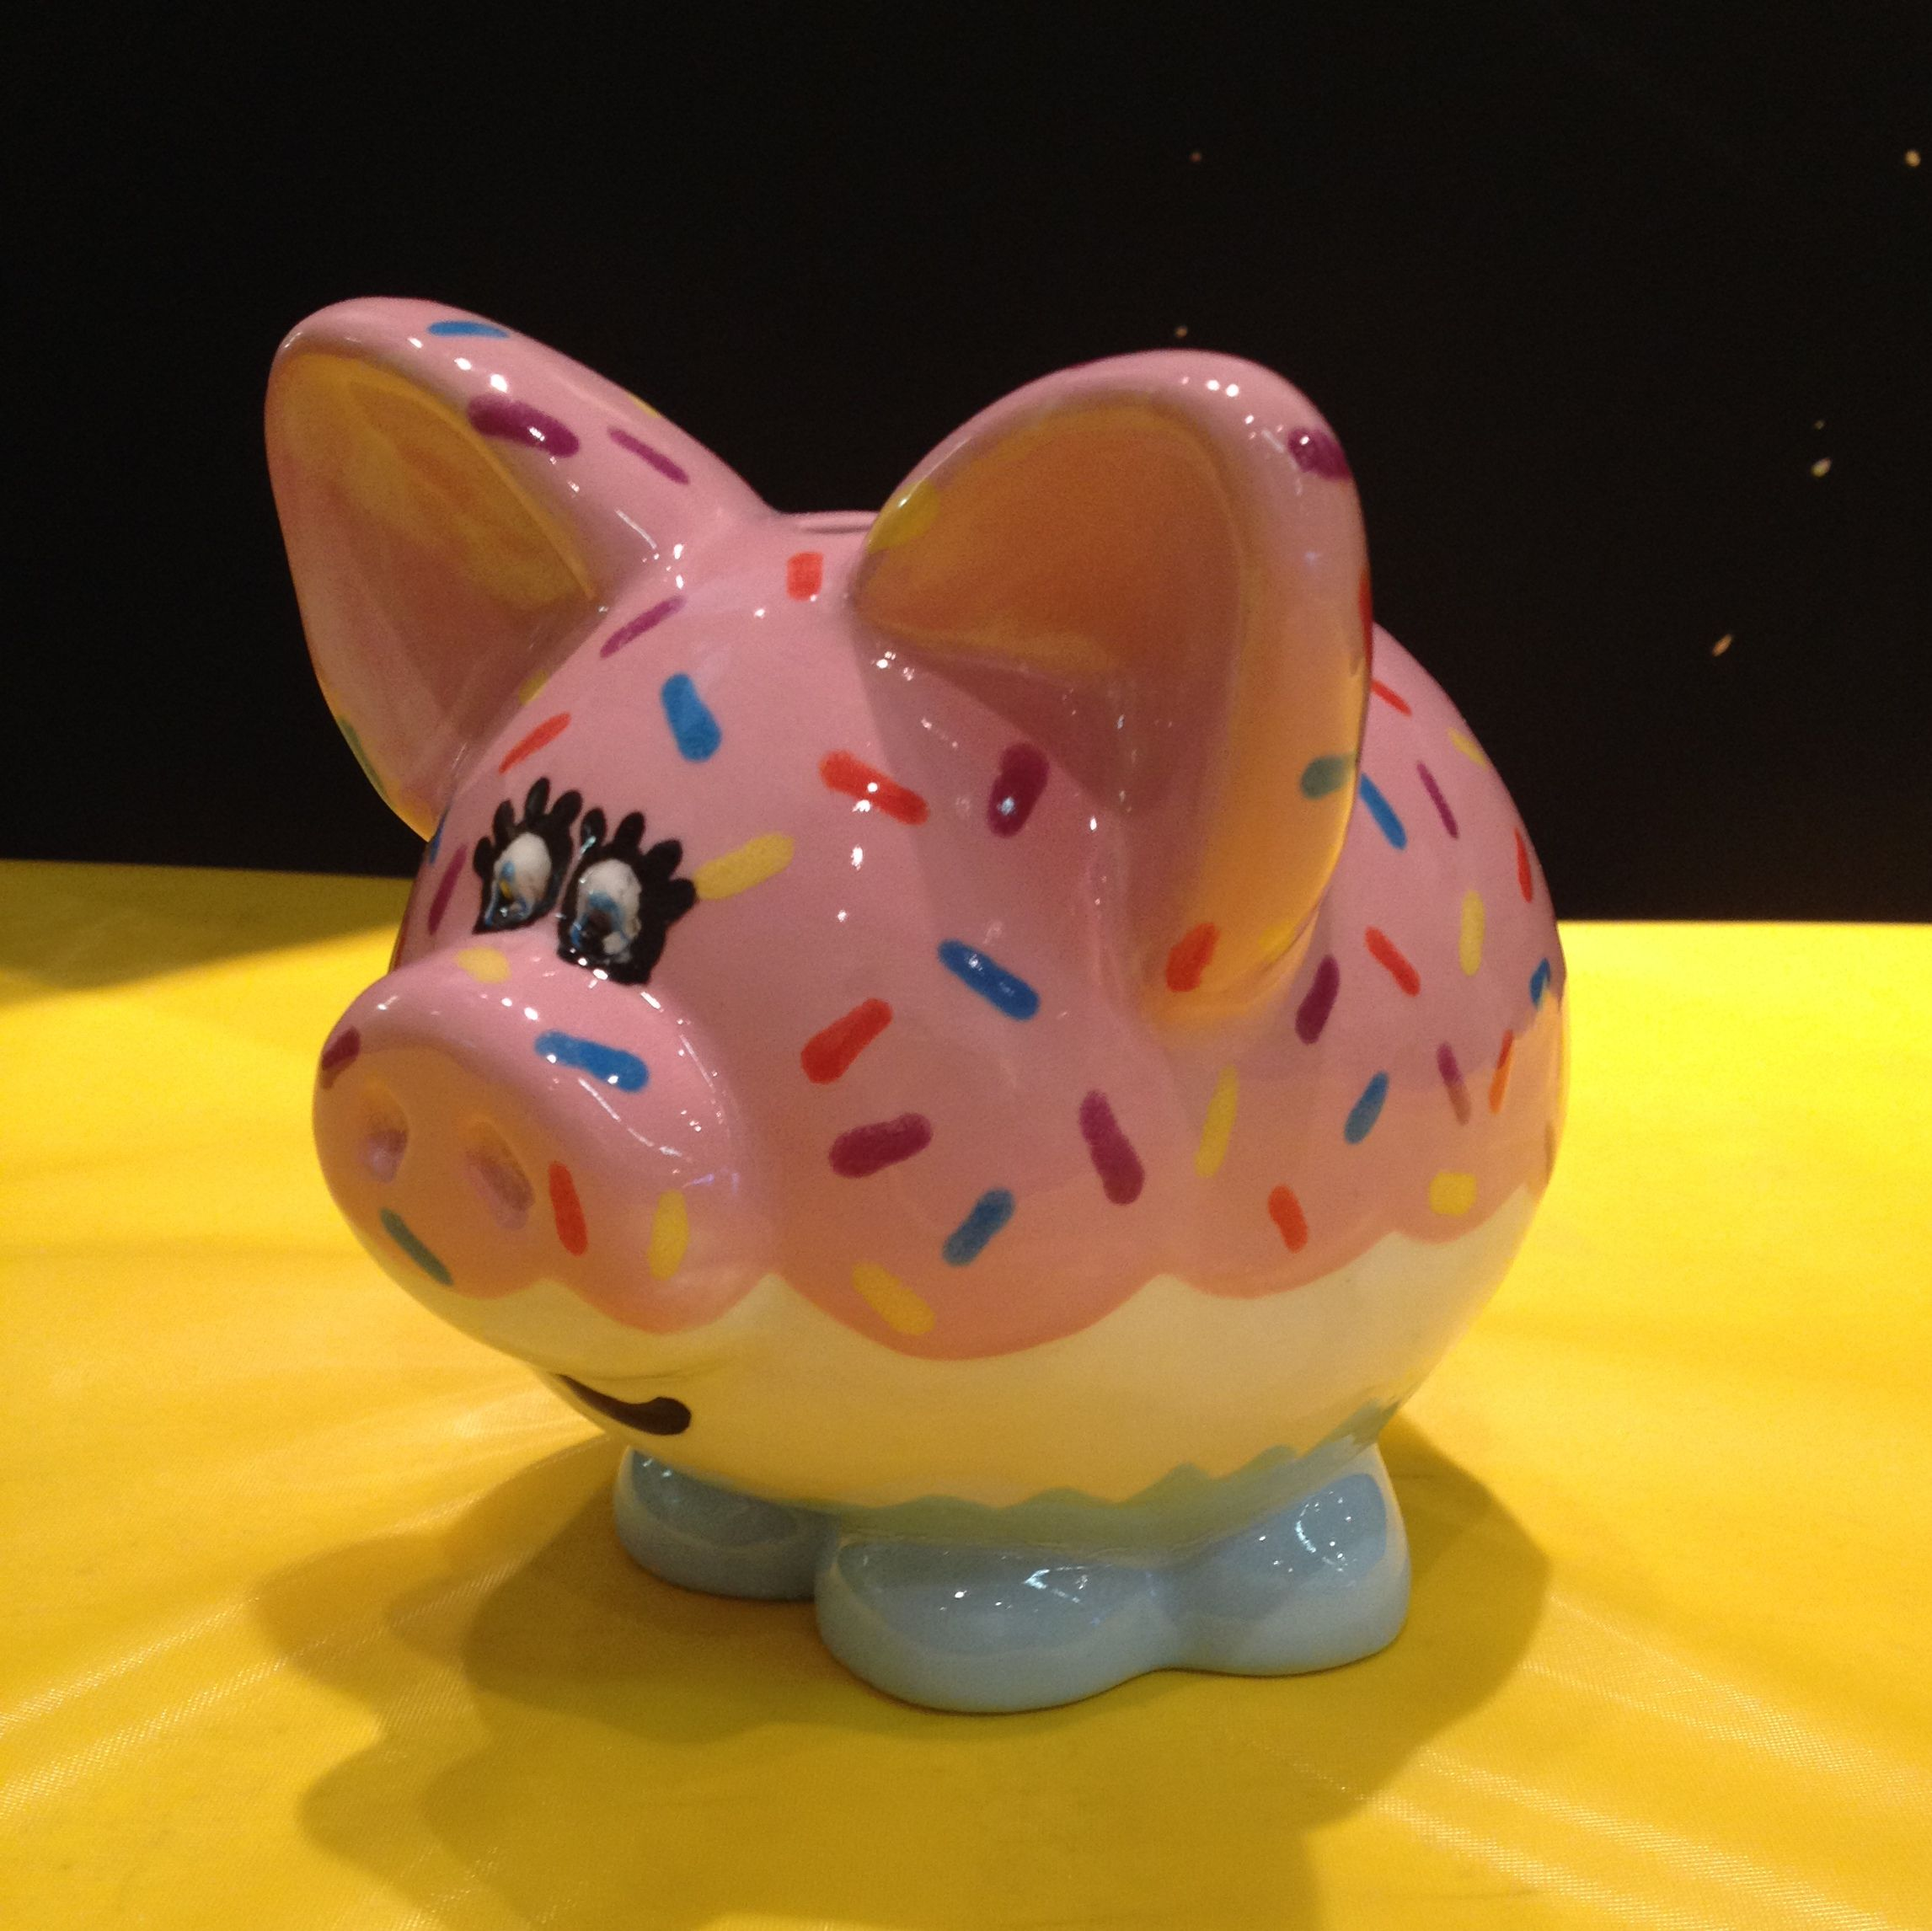 Piggy Bank Idea Cupcake Piggy Bank Oink Oink Themadpotter Piggy Bank